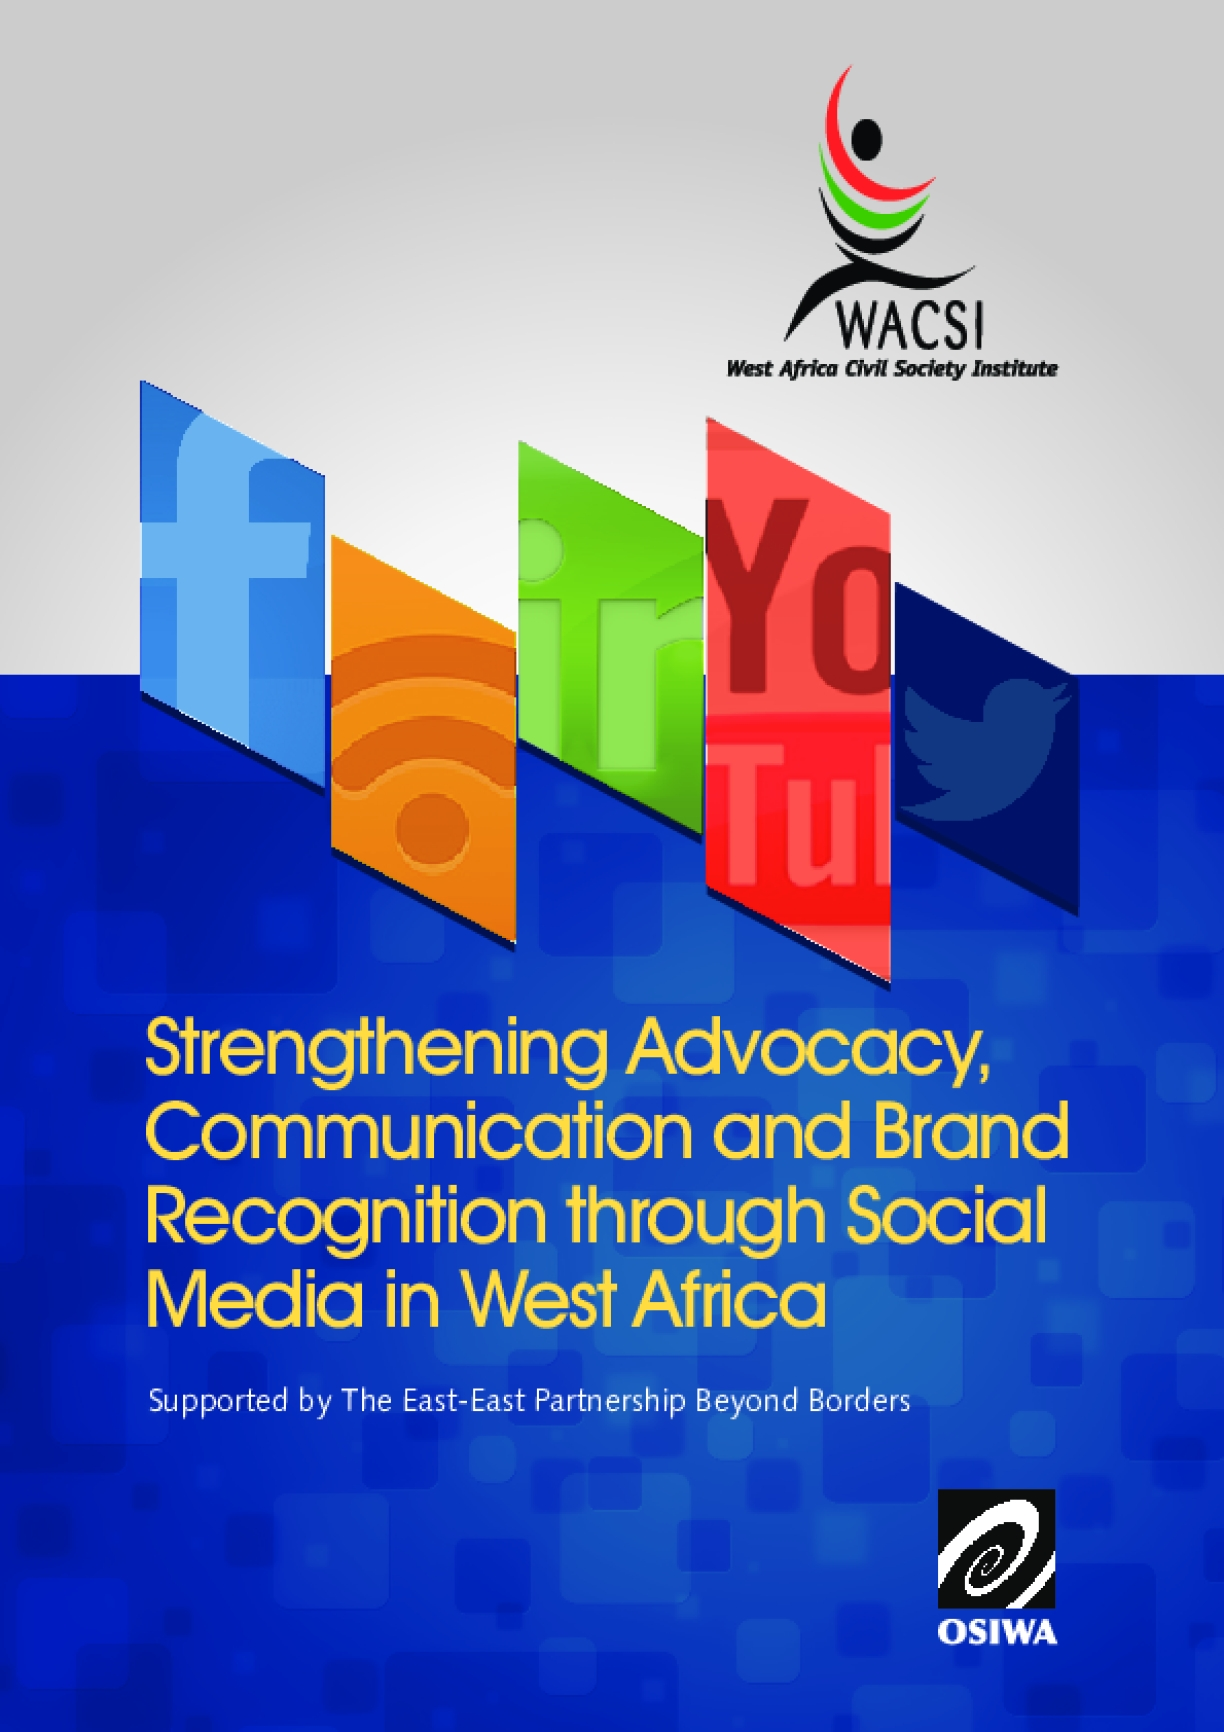 Strengthening Advocacy, Communication and Brand Recognition through Social Media in West Africa